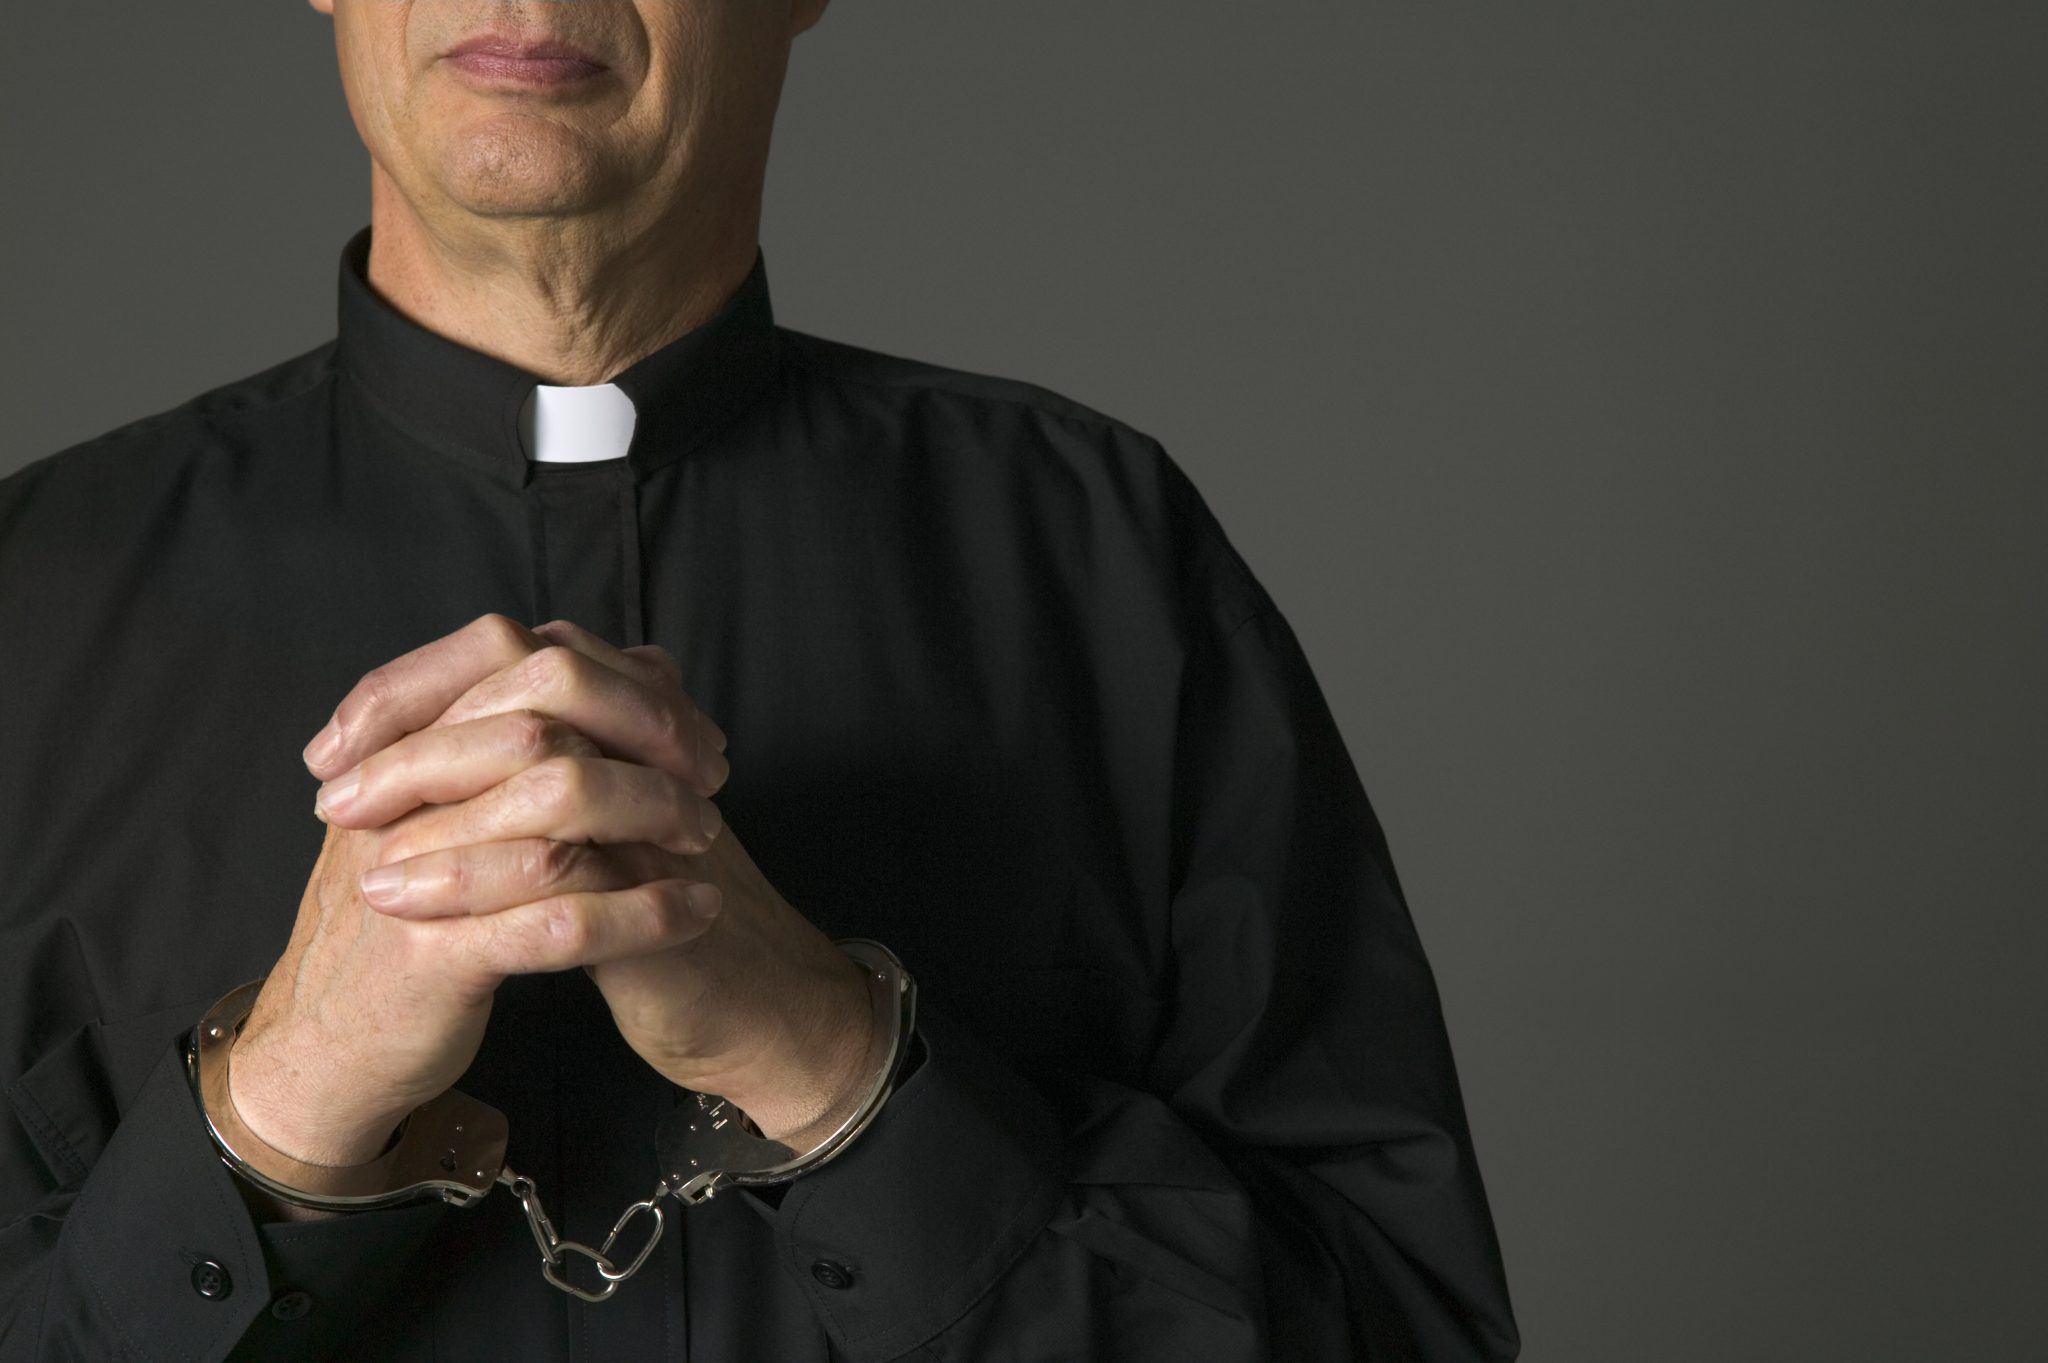 A priest in handcuffs